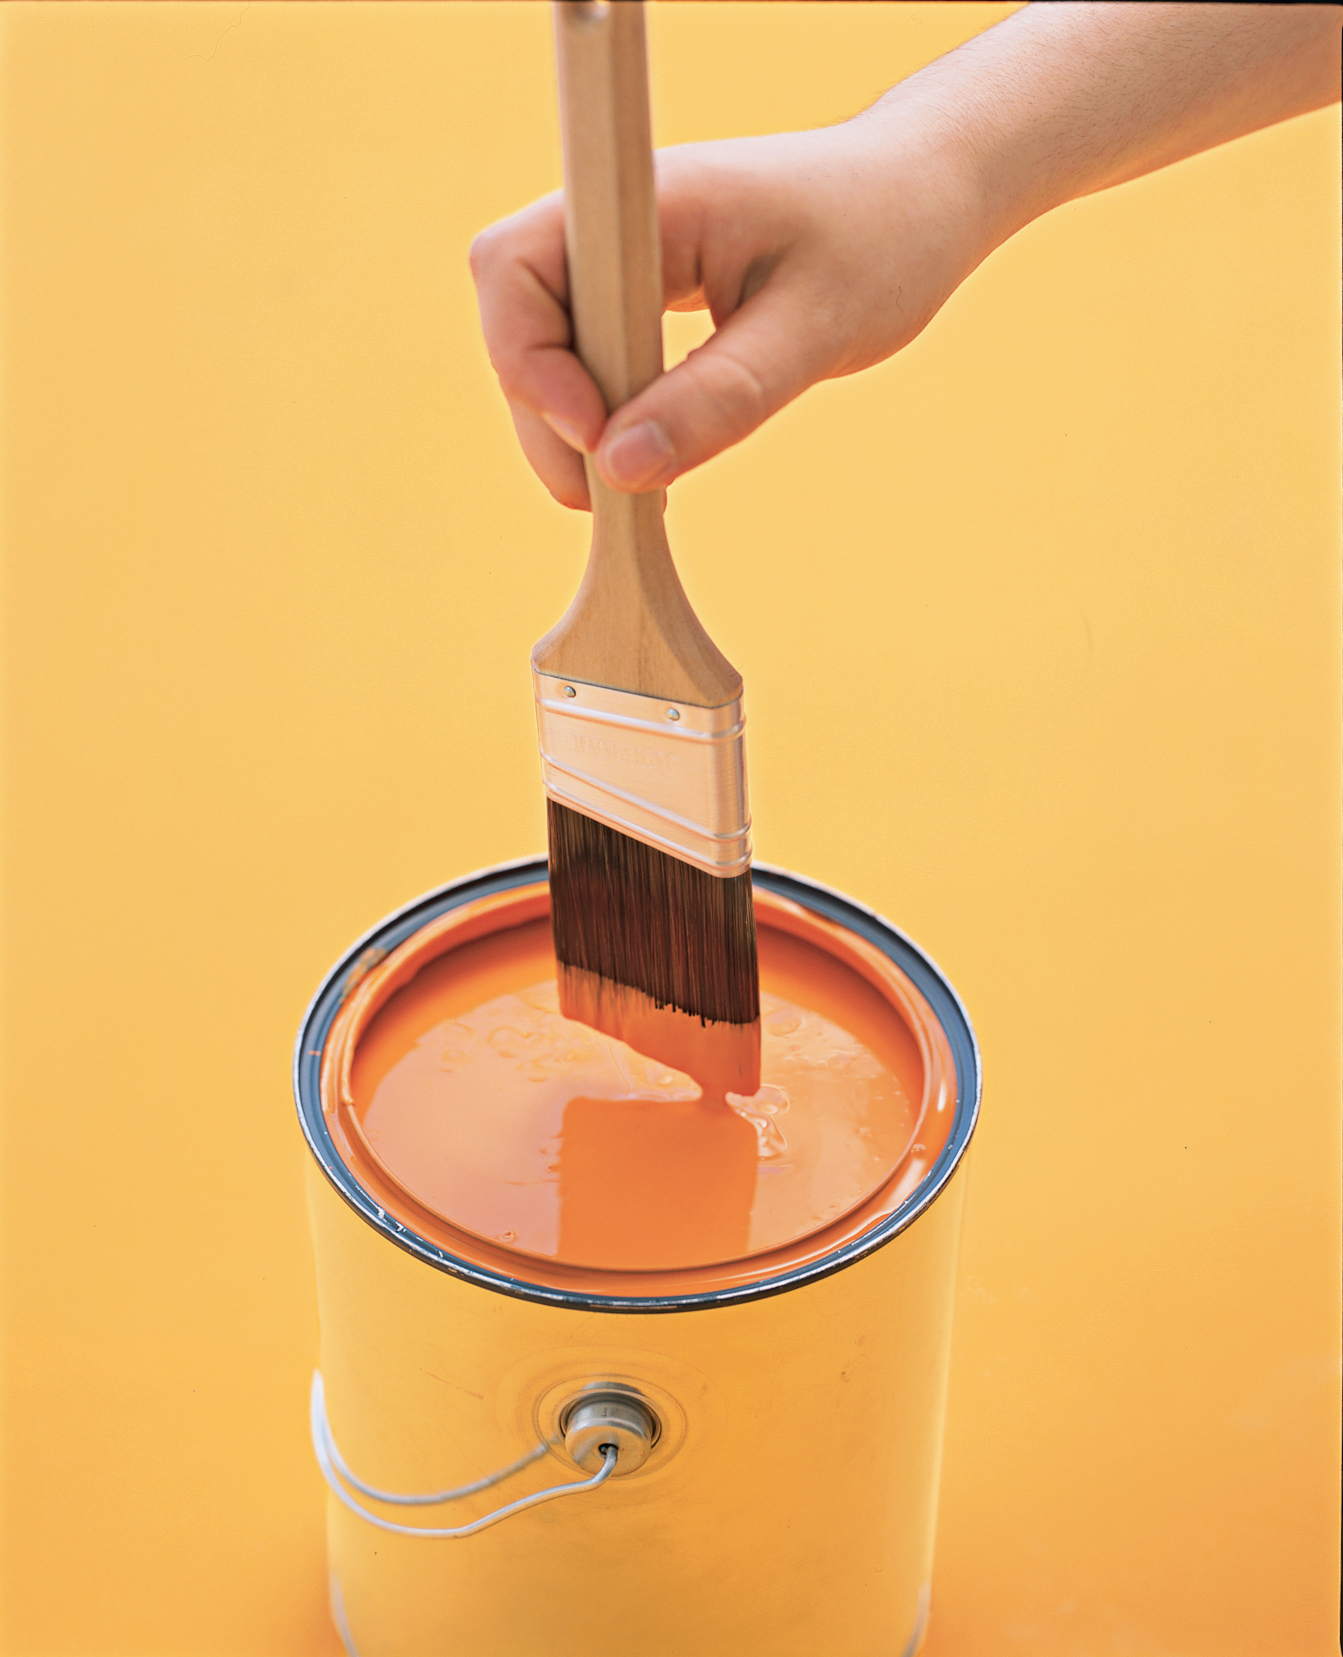 Paintbrush and can